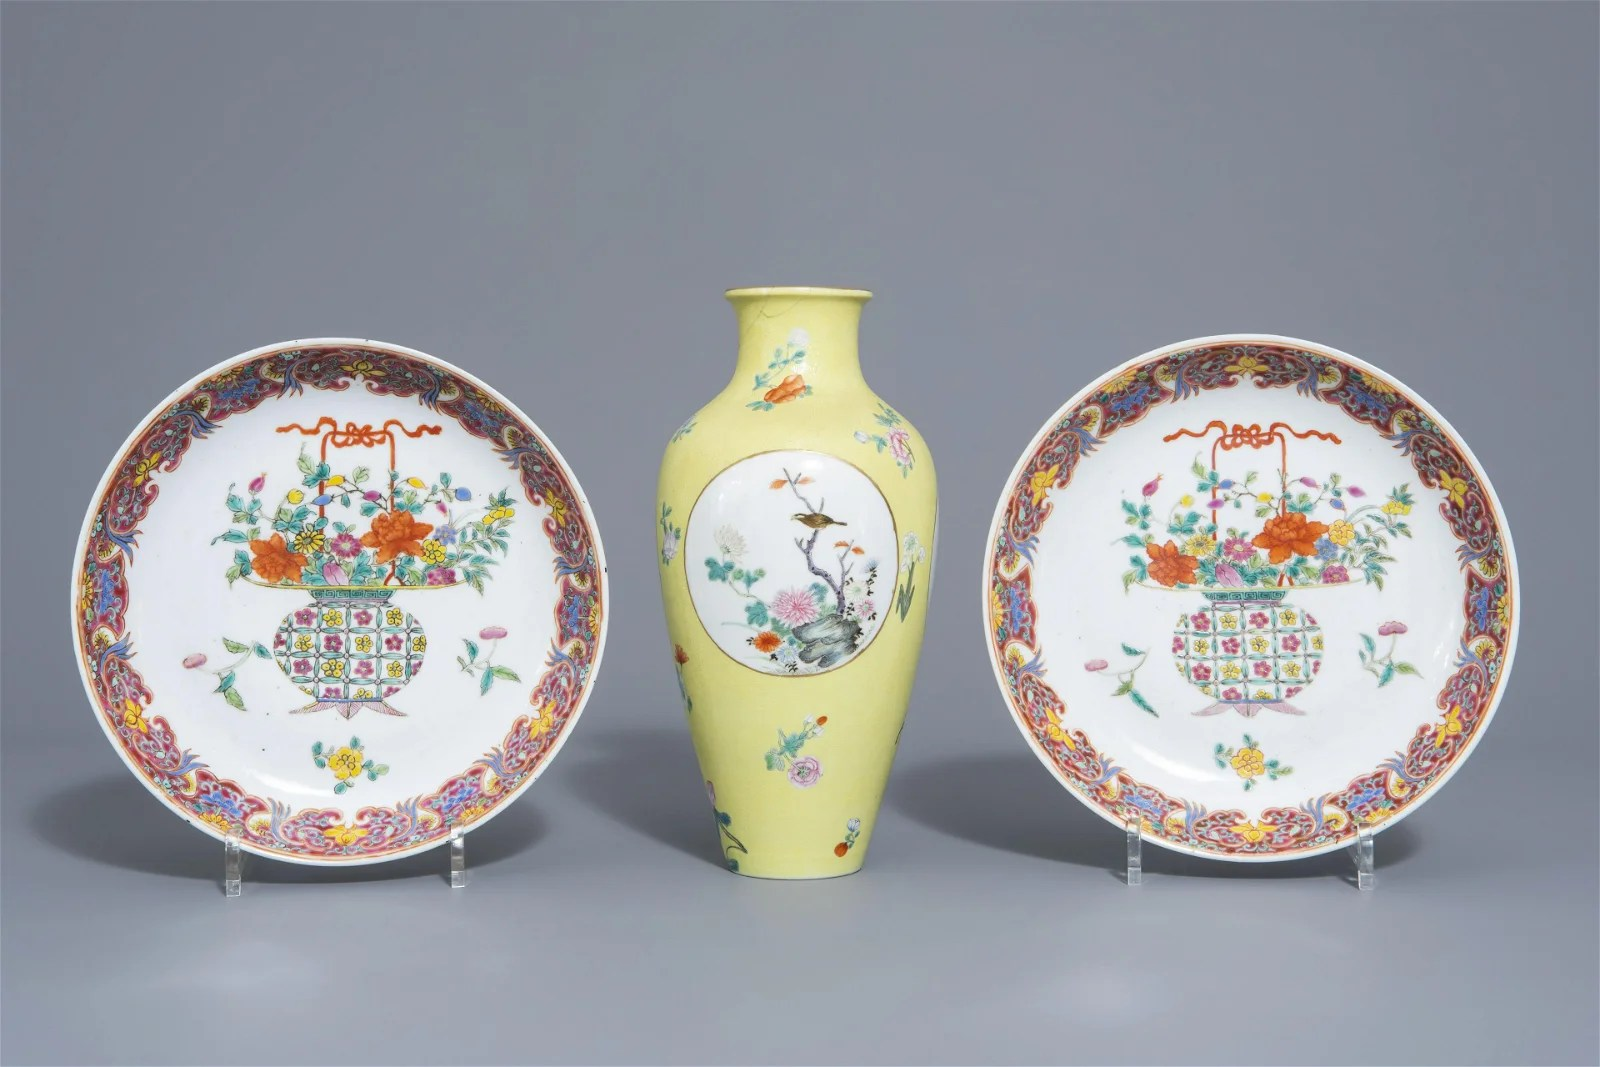 A pair of Chinese famille rose plates and a yellow